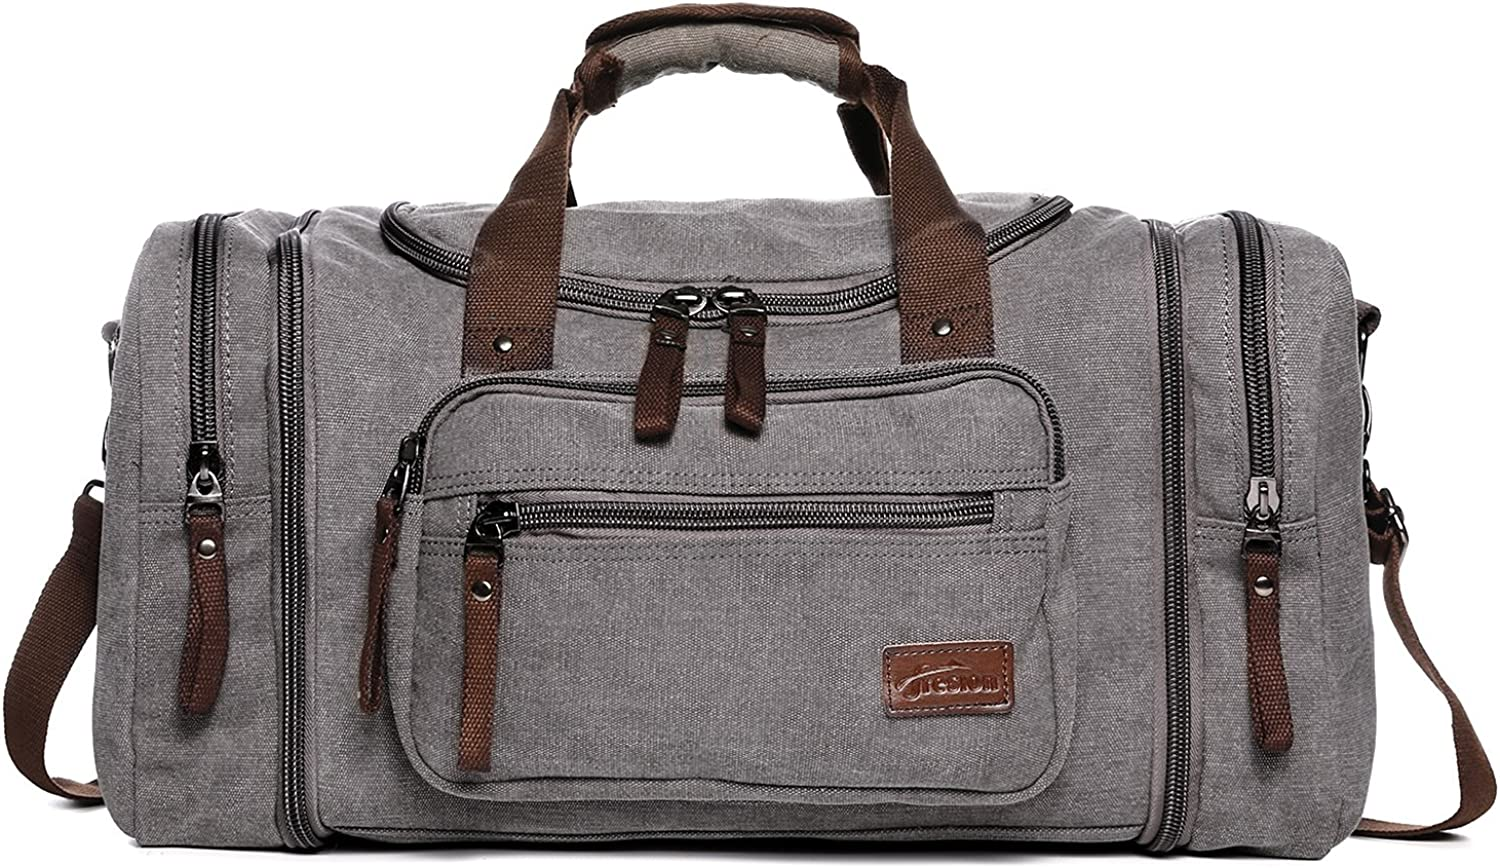 Fresion Large Canvas Travel Tote Bag Men's Weekender Duffle Bag For Women & Men with 44L